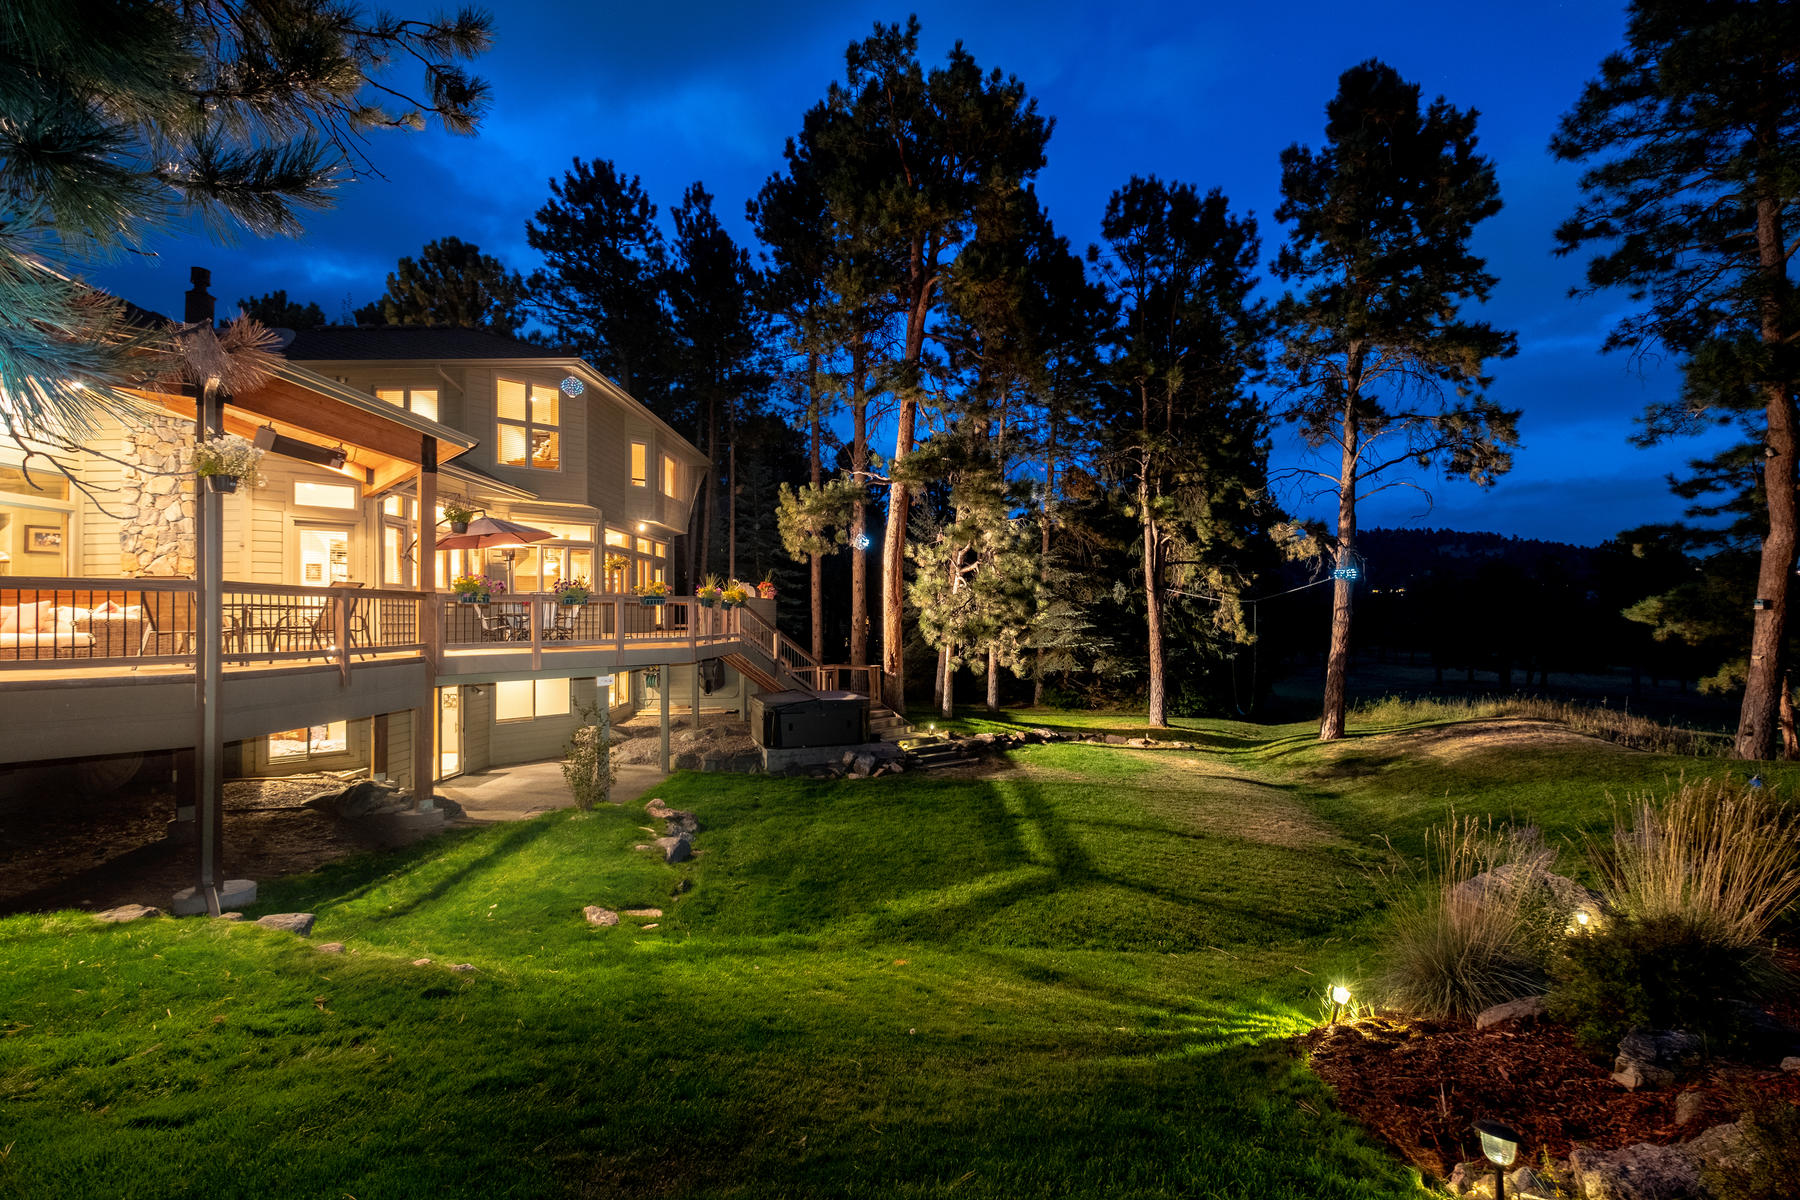 Single Family Homes for Sale at Premier Golf Course Property in the Coveted Island at Hiwan 2176 Island Point Evergreen, Colorado 80439 United States